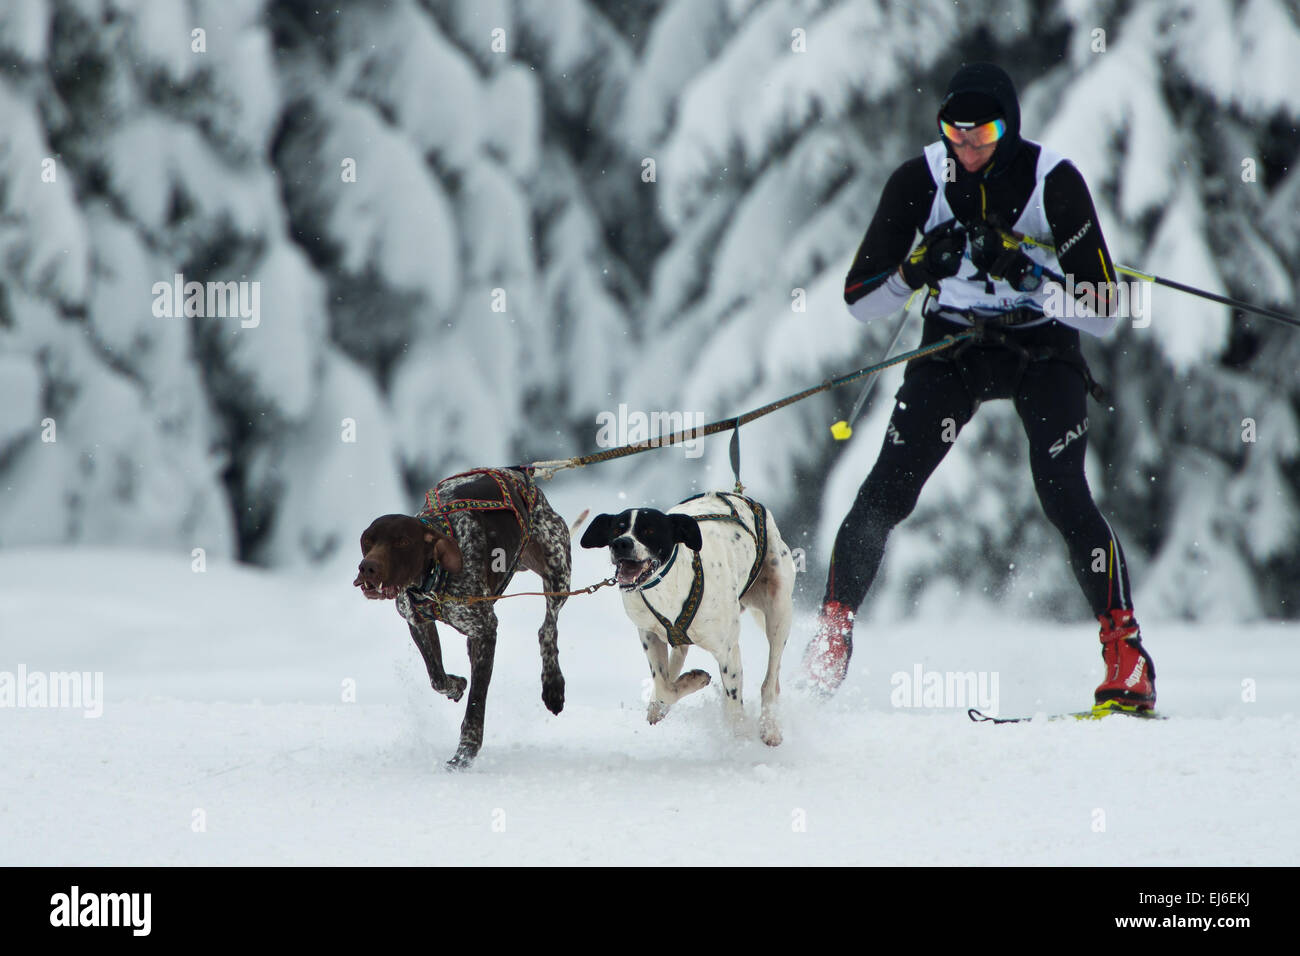 Two dogs and unidentified musher during sleddog speed racing. - Stock Image